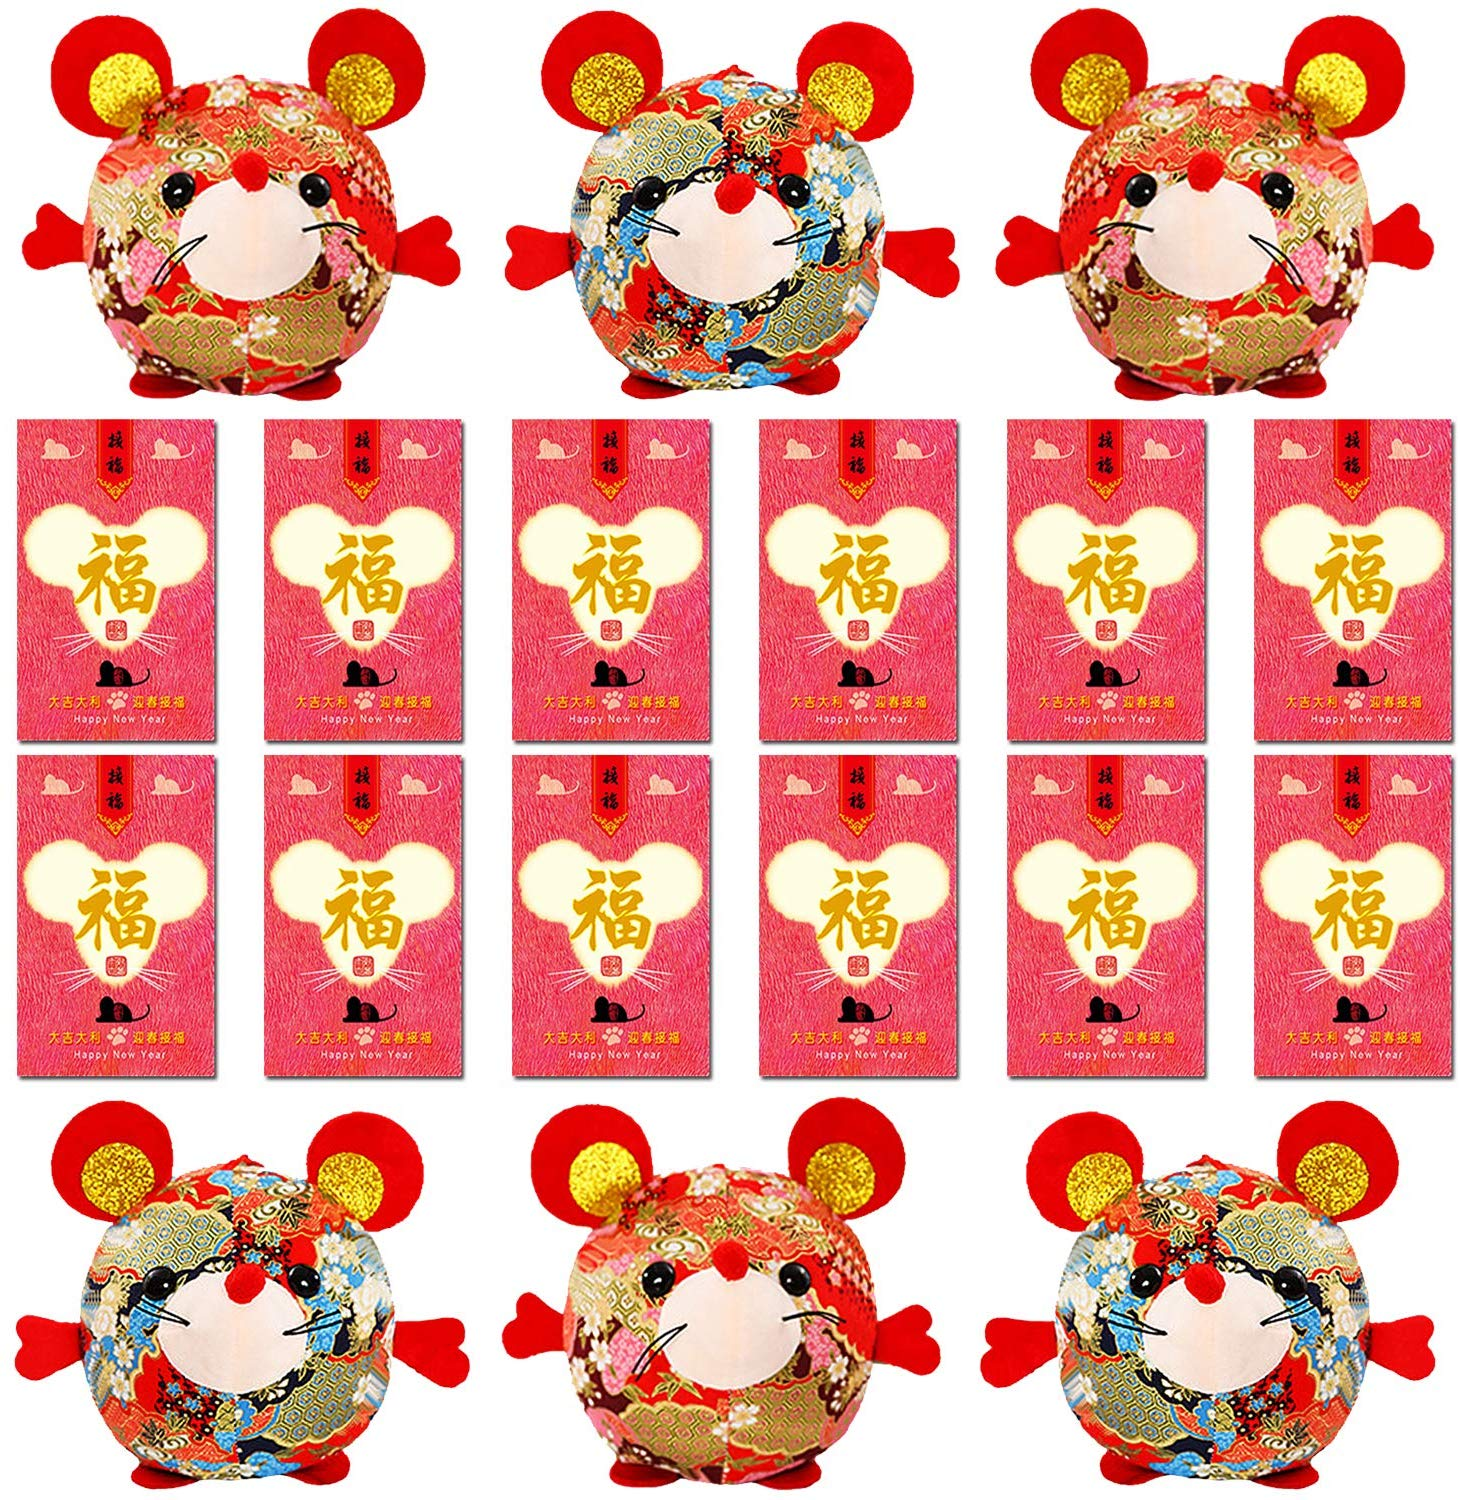 A Red Mouse Plush Toy